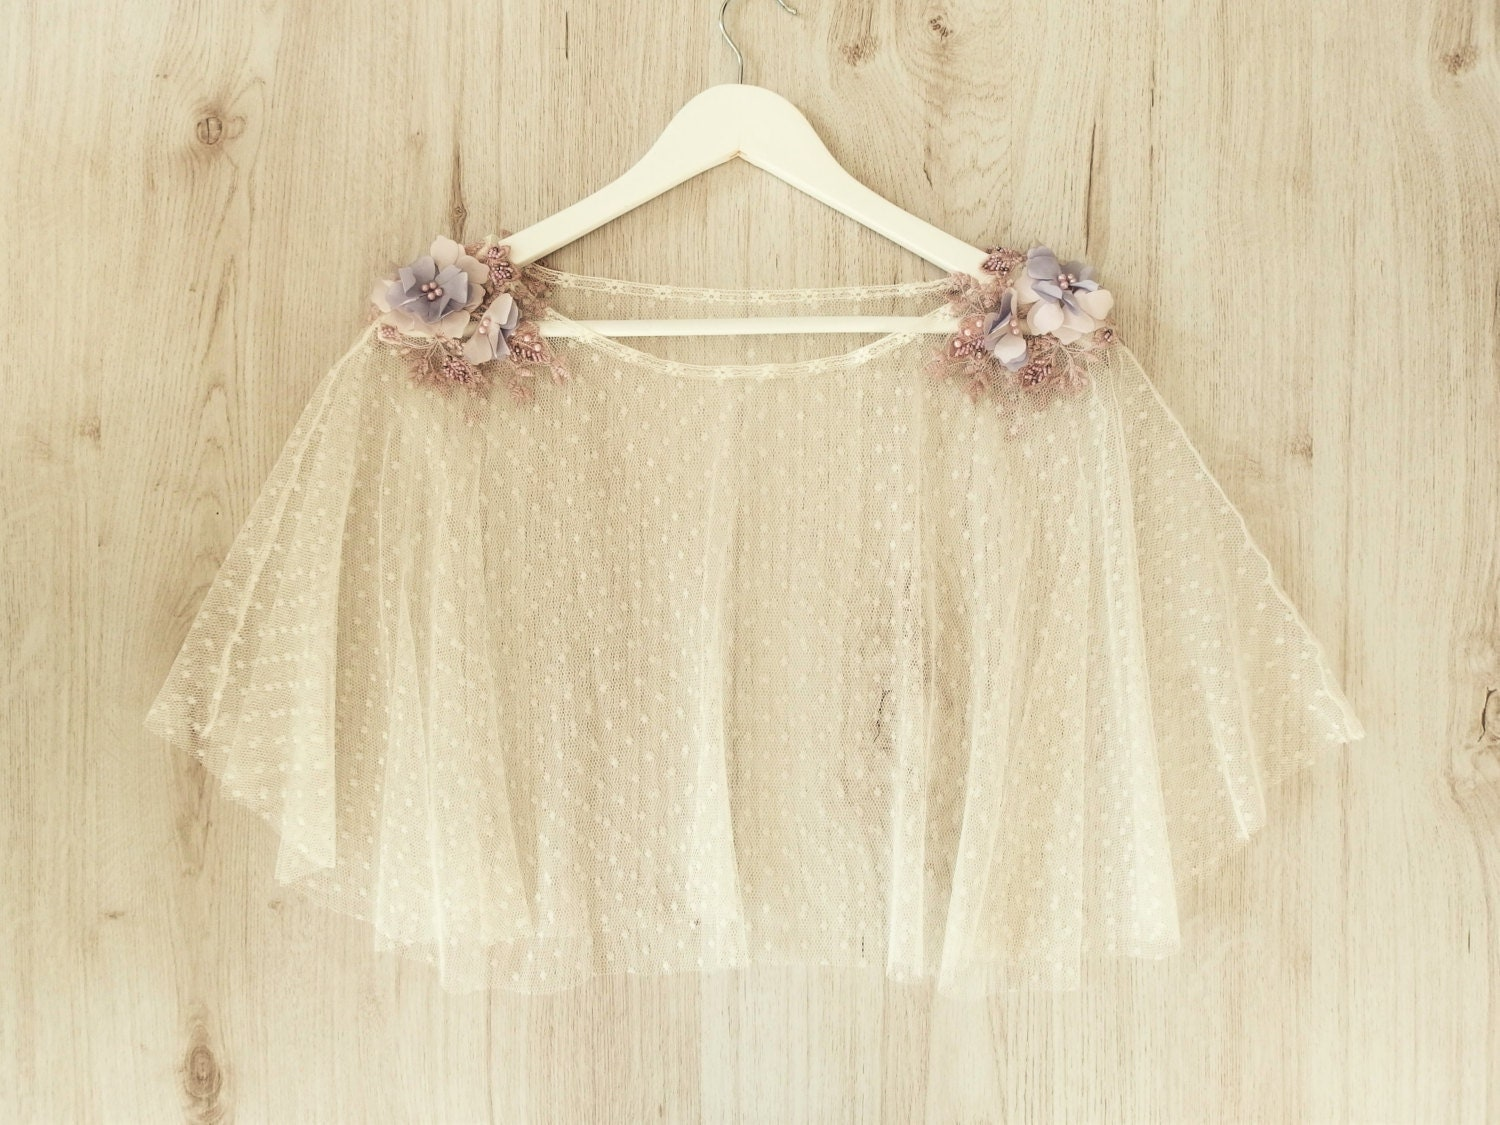 Wedding Gown With Cape: Cape For Tulle Wedding Dress Embroidered With Mauve Flowers